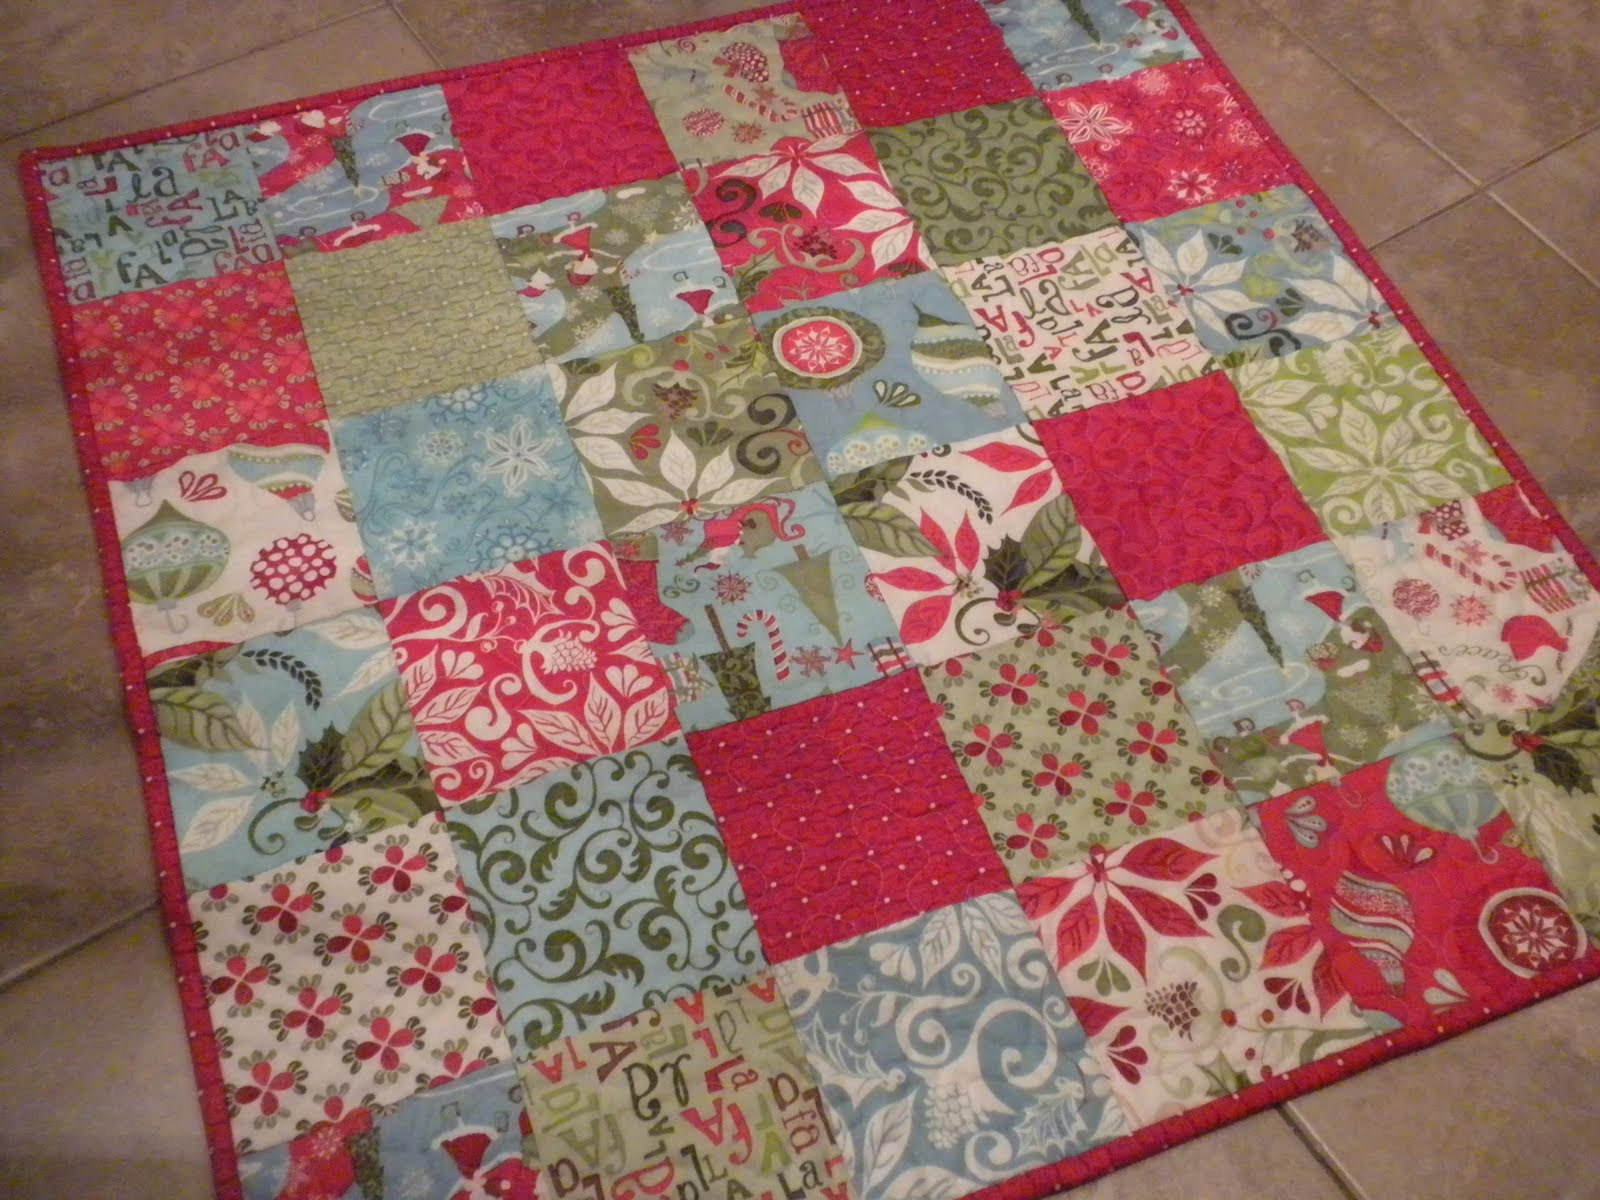 Small Quilted Gift Ideas To Make : Sewing Sisters: Christmas sewing projects